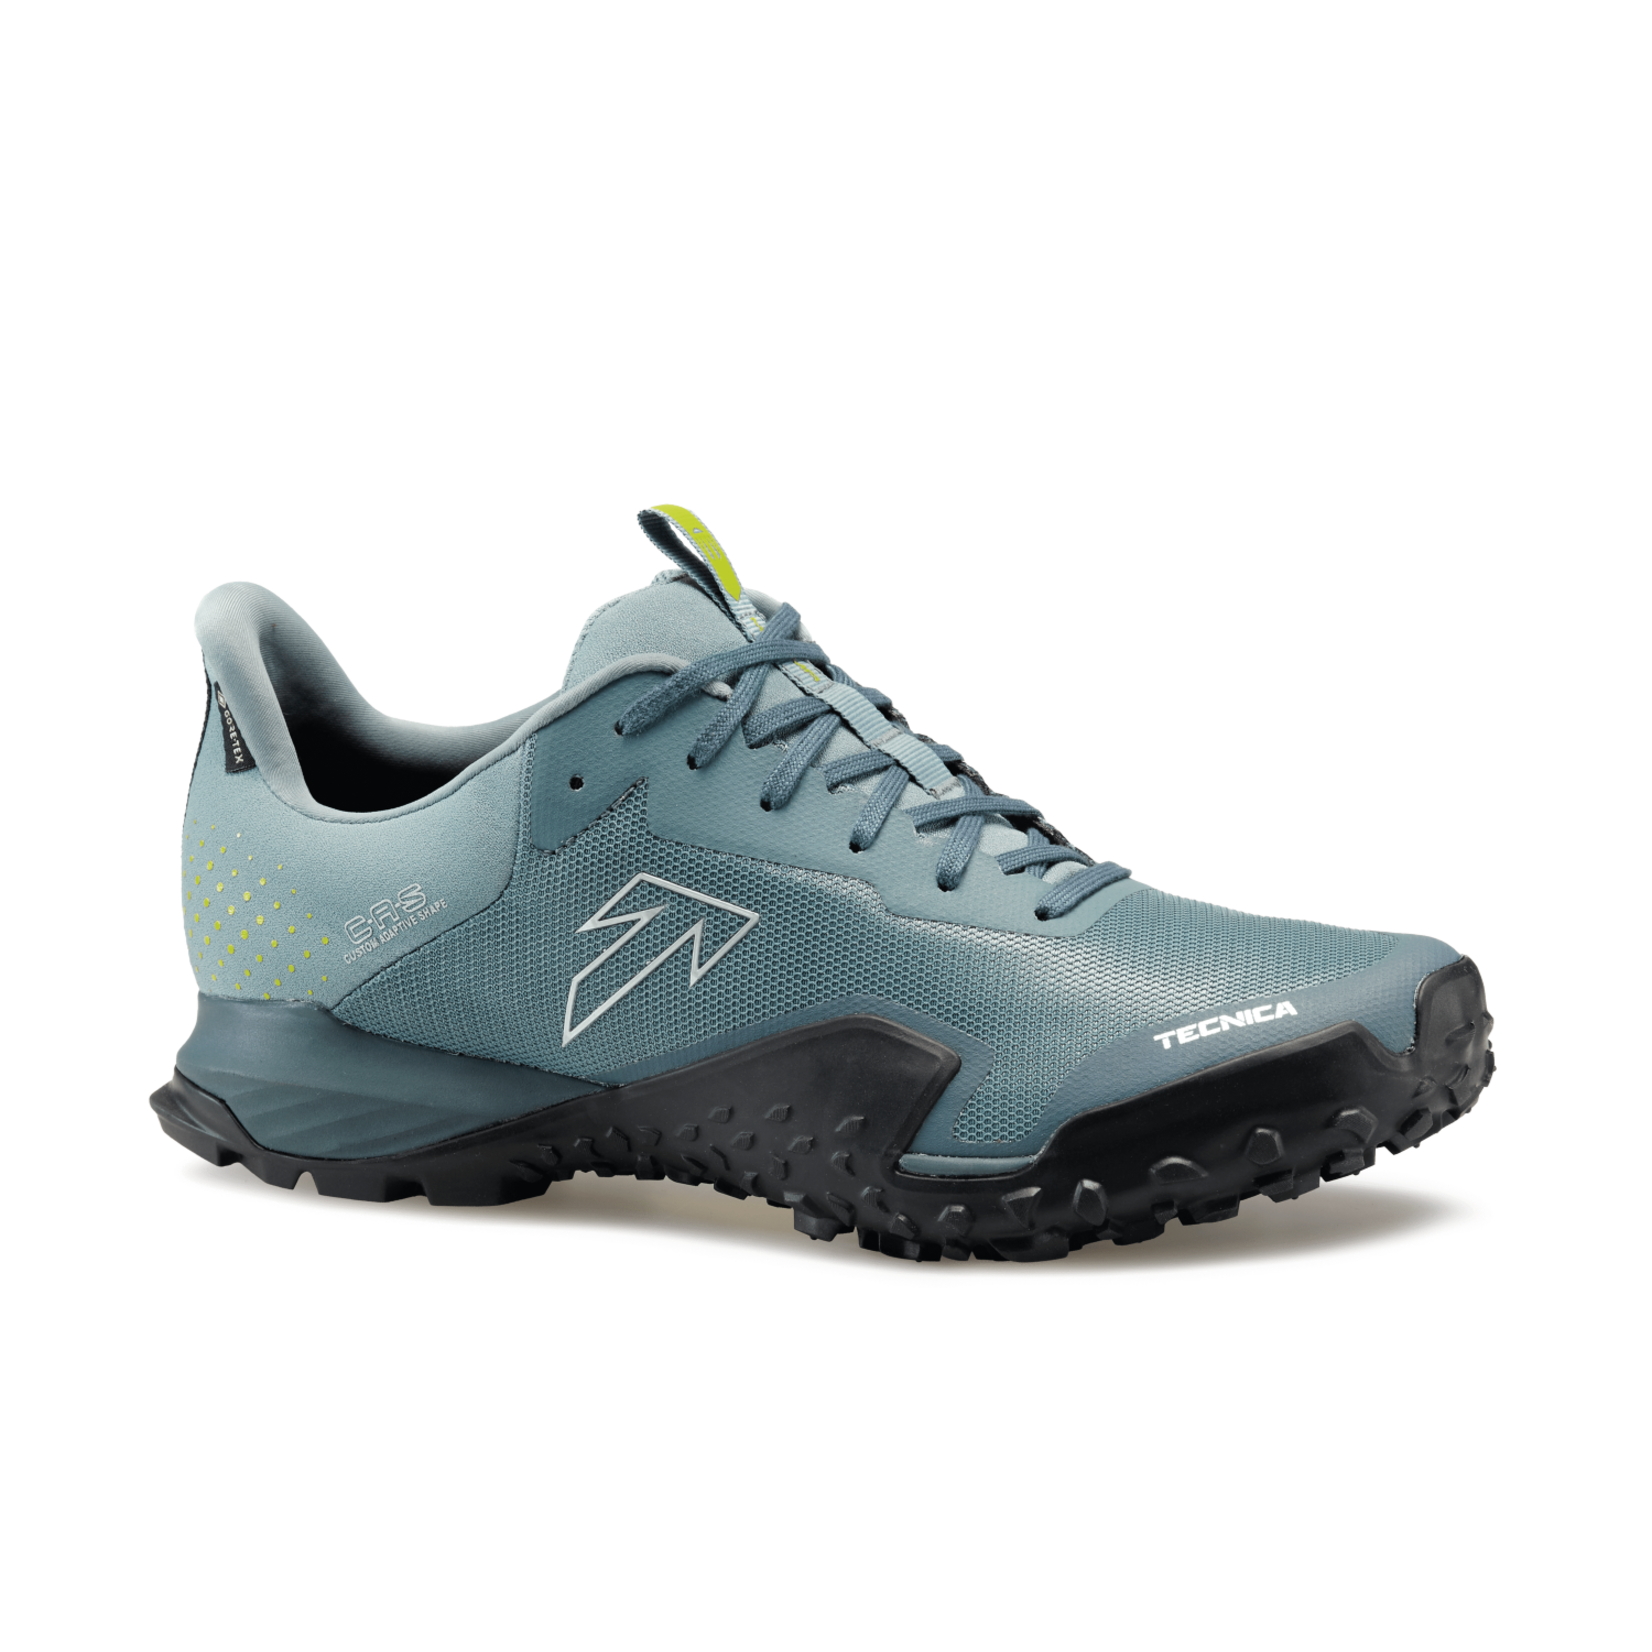 Tecnica Chaussure Tecnica  Magma S GTX - Homme